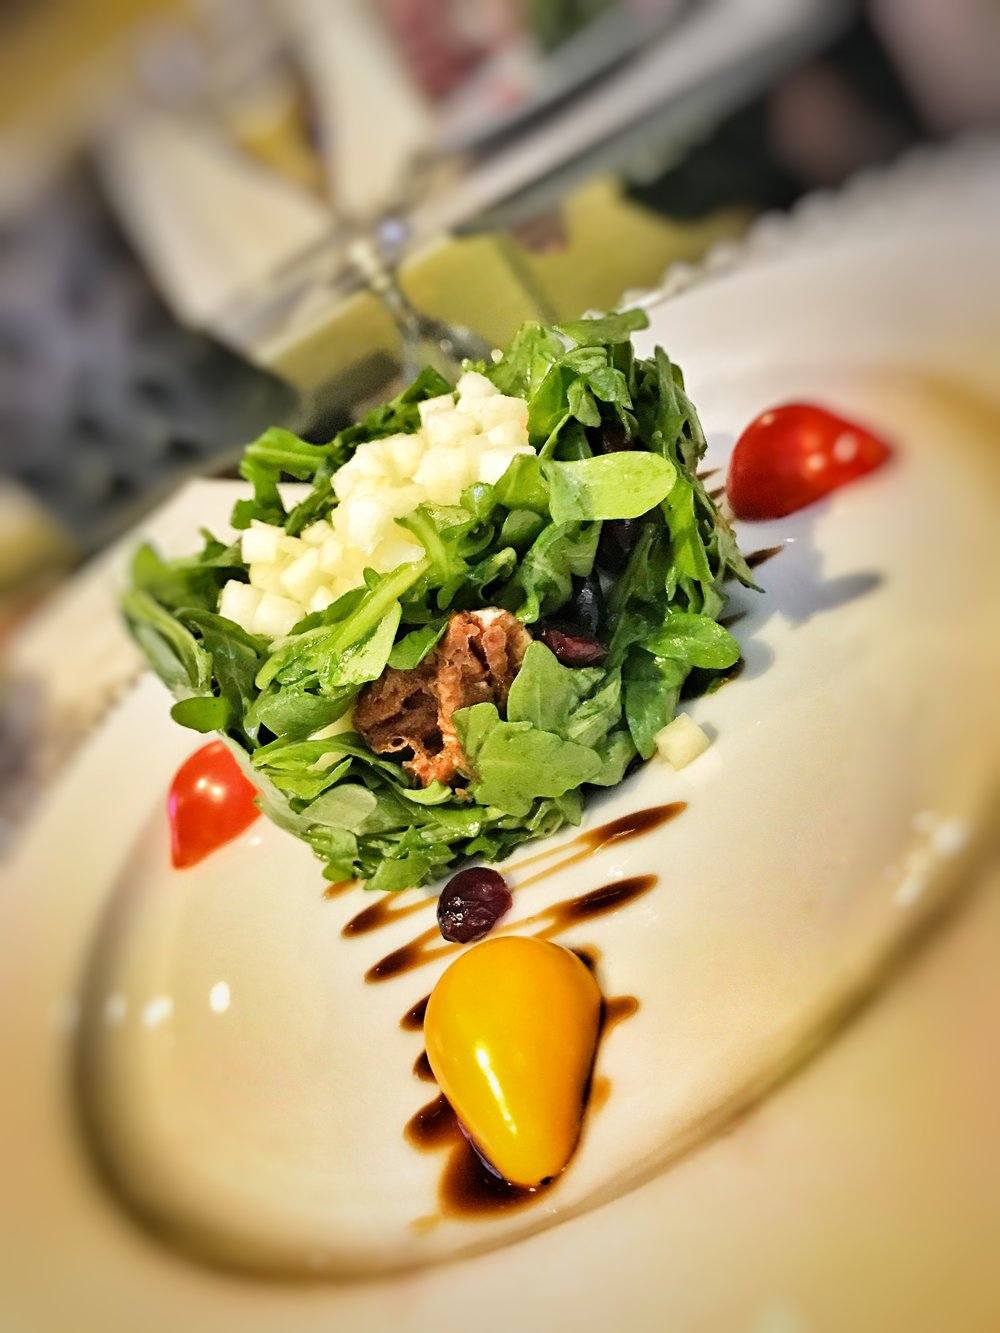 COMPRESSED SALAD OF BABY ARUGULA with MANCHEGO CHEESE, GALA APPLES, SUNDRIED CRANBERRIES, CARAMELIZED PECANS & TEARDROP TOMATOES with AGED BALSAMIC VINAIGRETTE